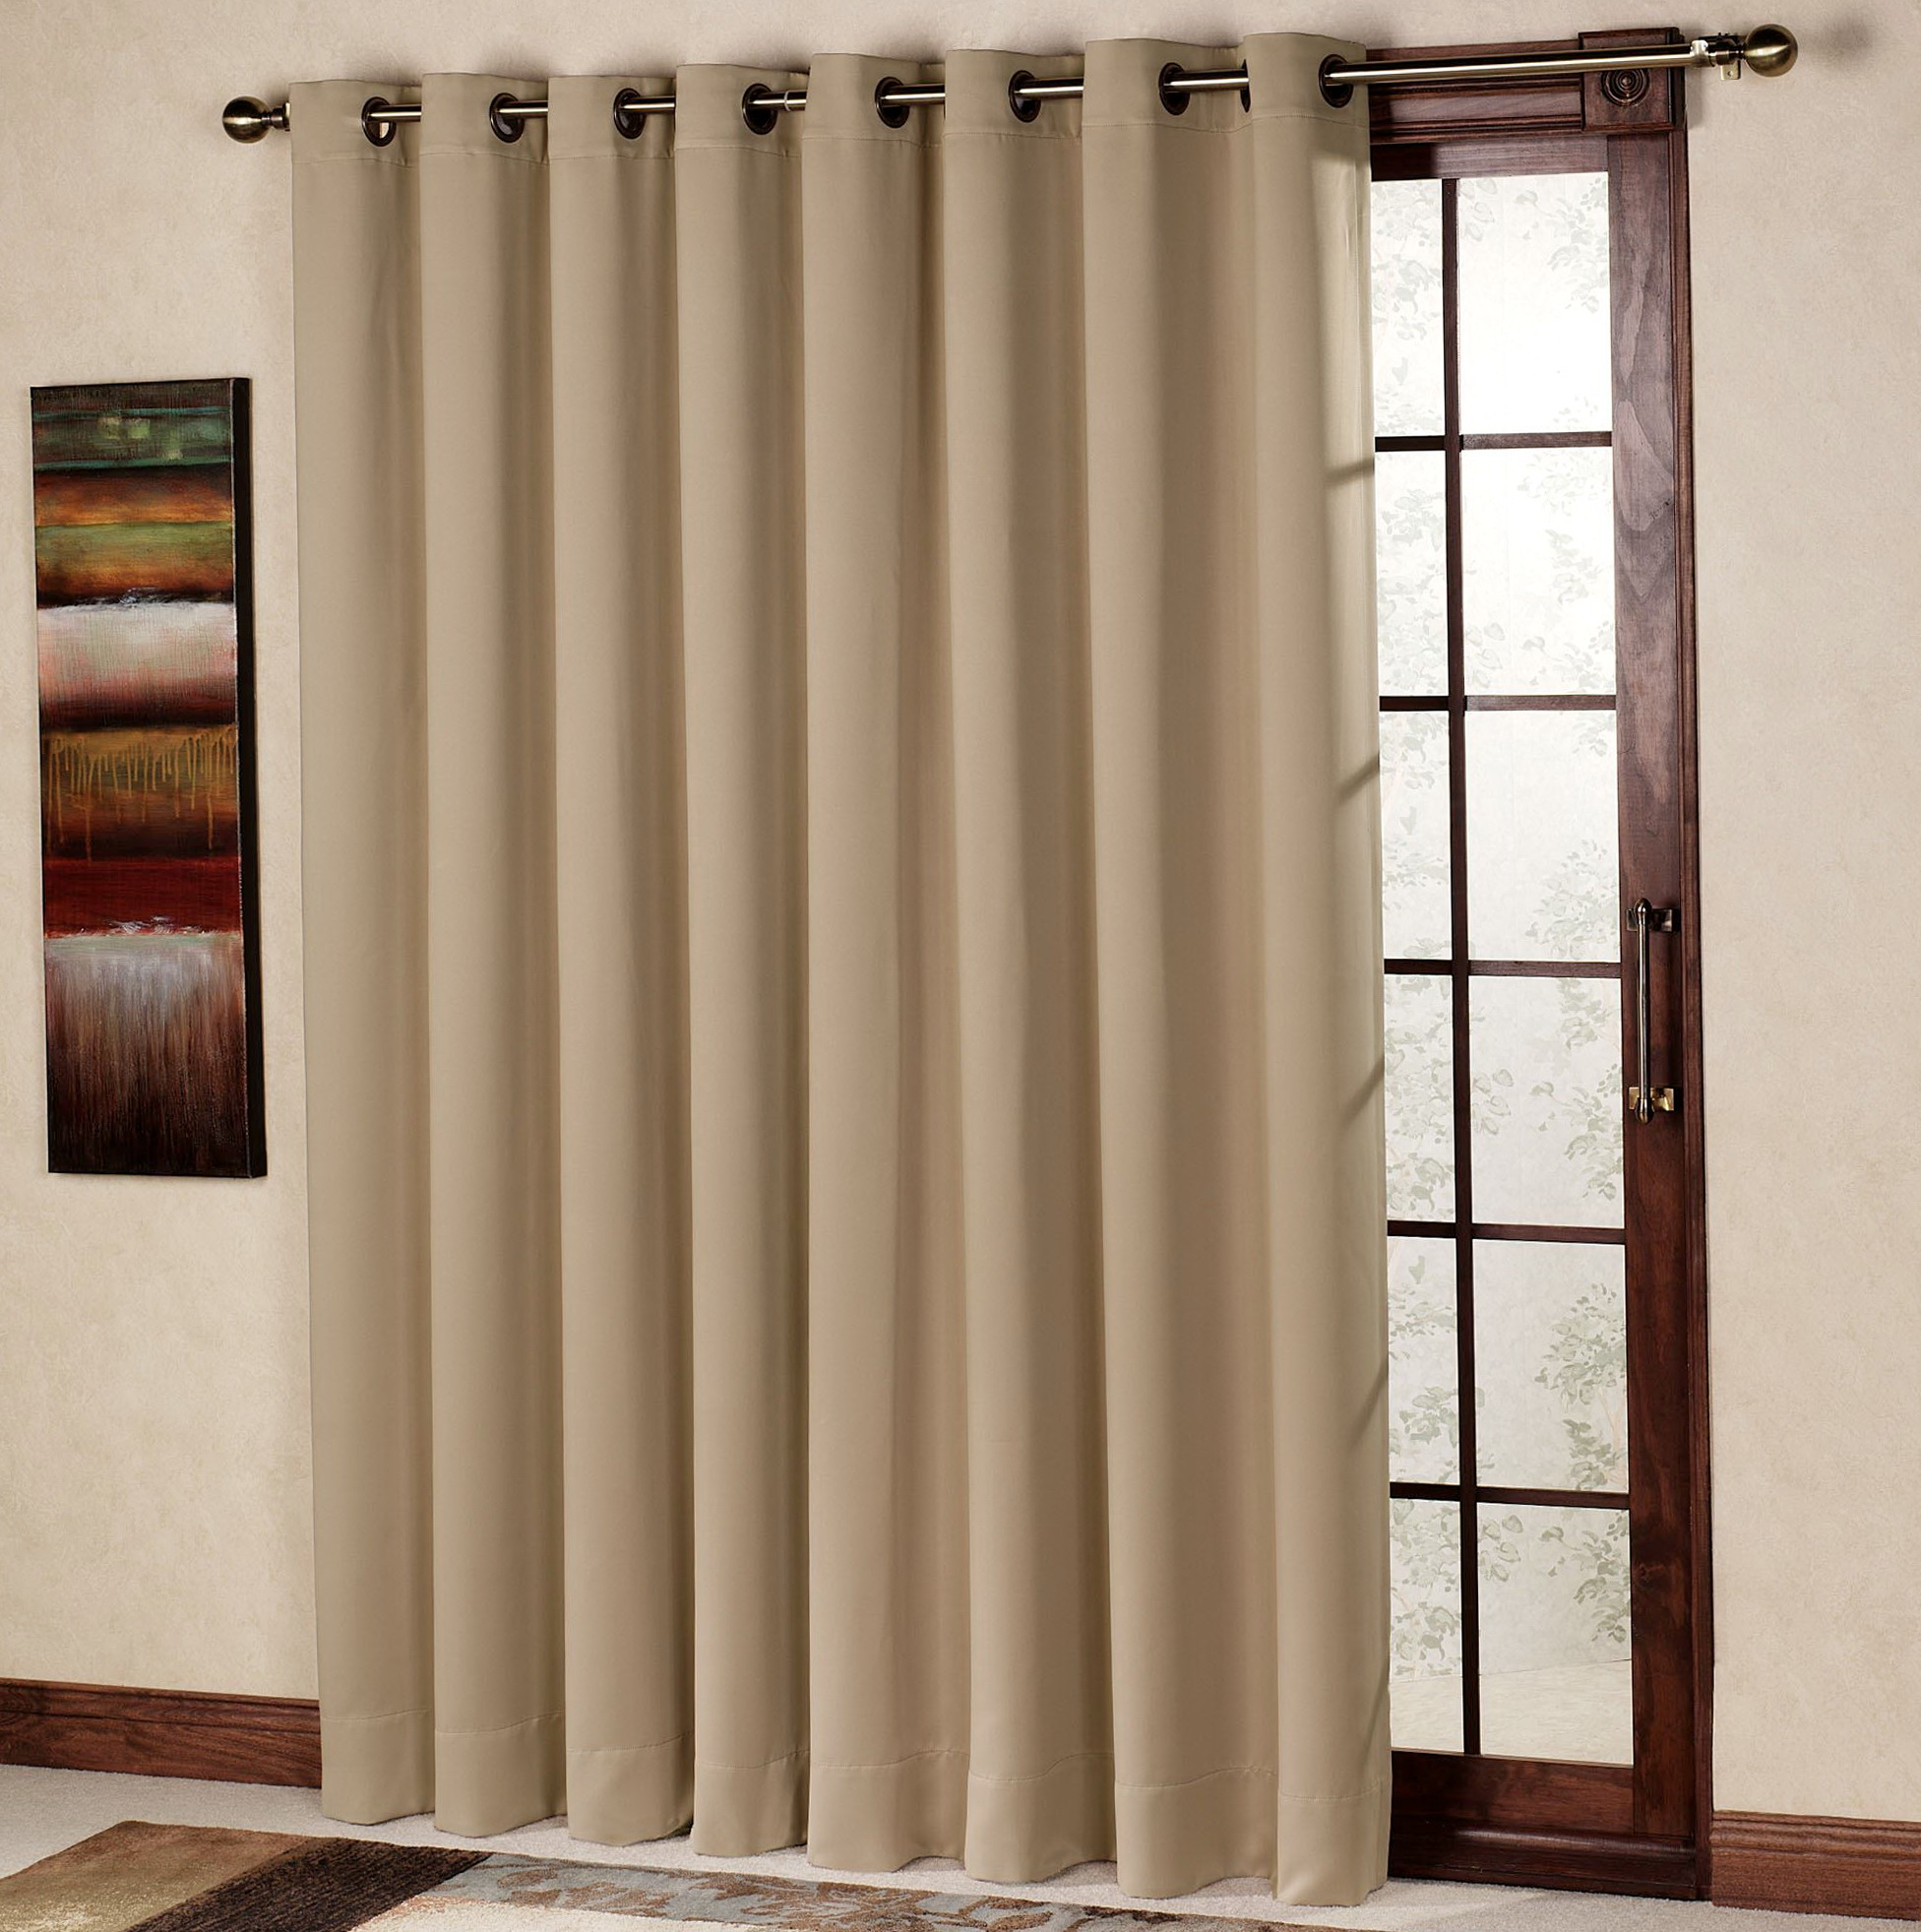 Grommet top curtains for sliding glass doors home design for Best sliding glass doors